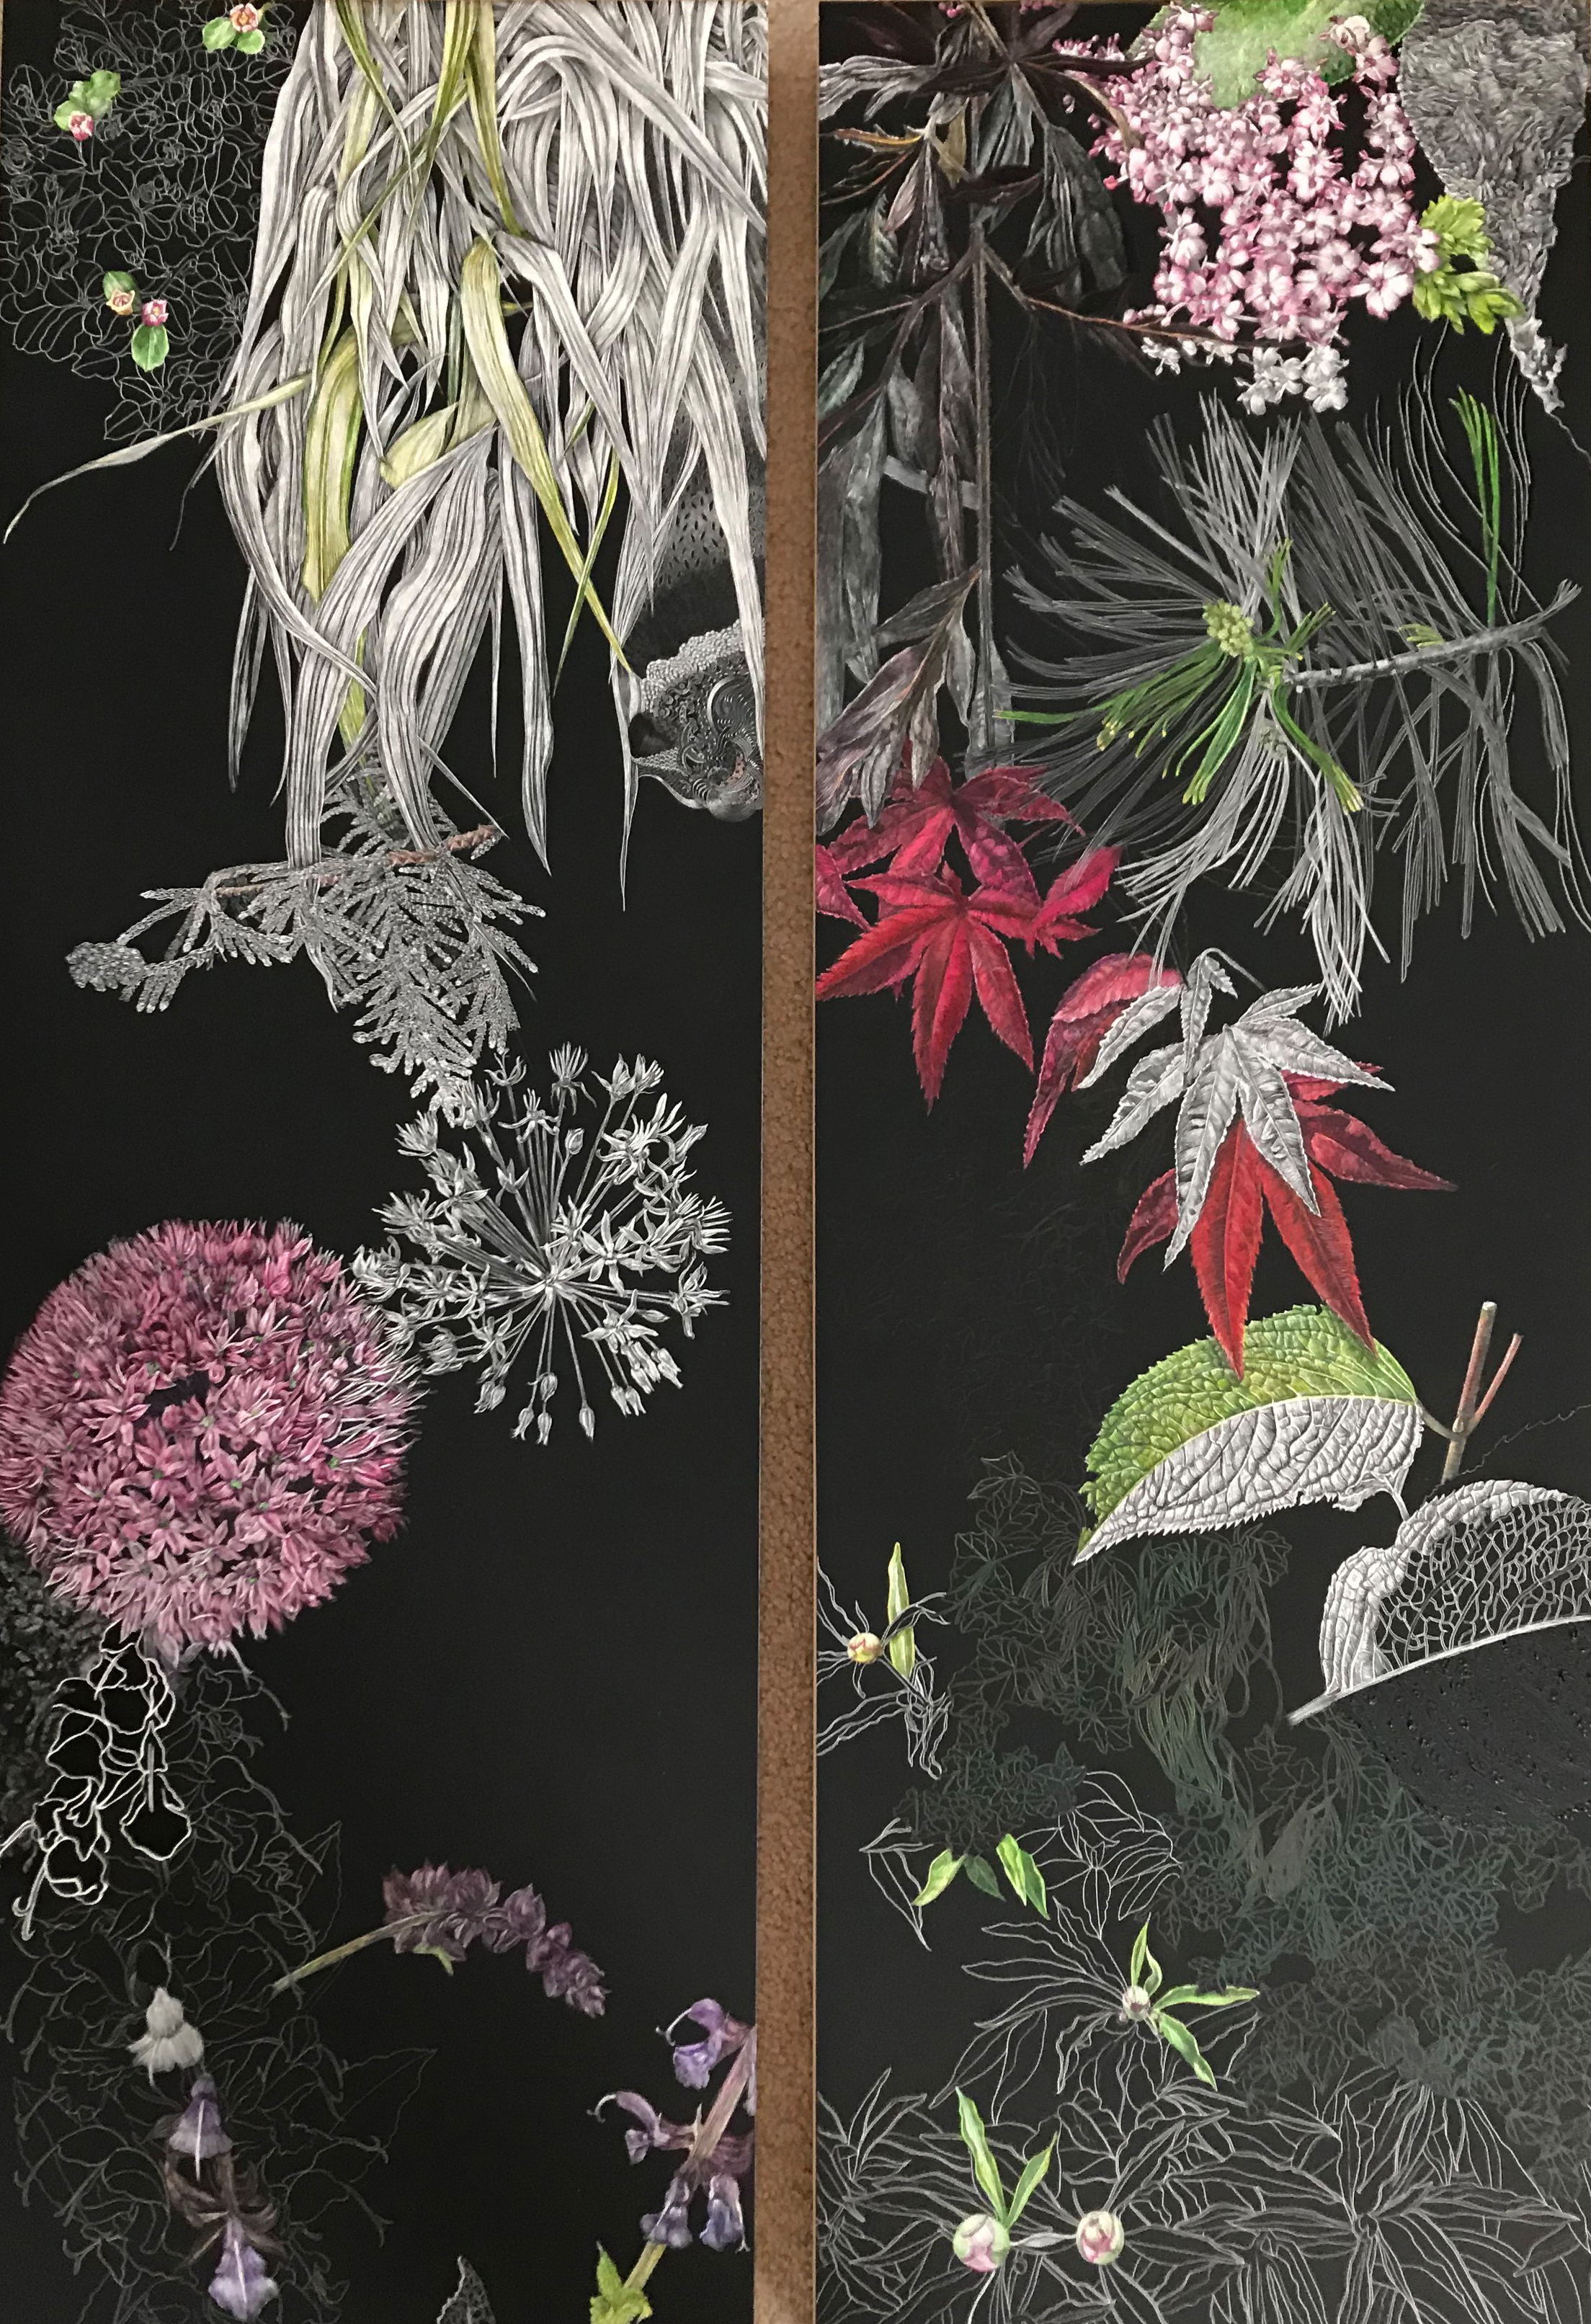 2 Panels of a Triptych of elements from a Collectors Garden by Lisa Goesling